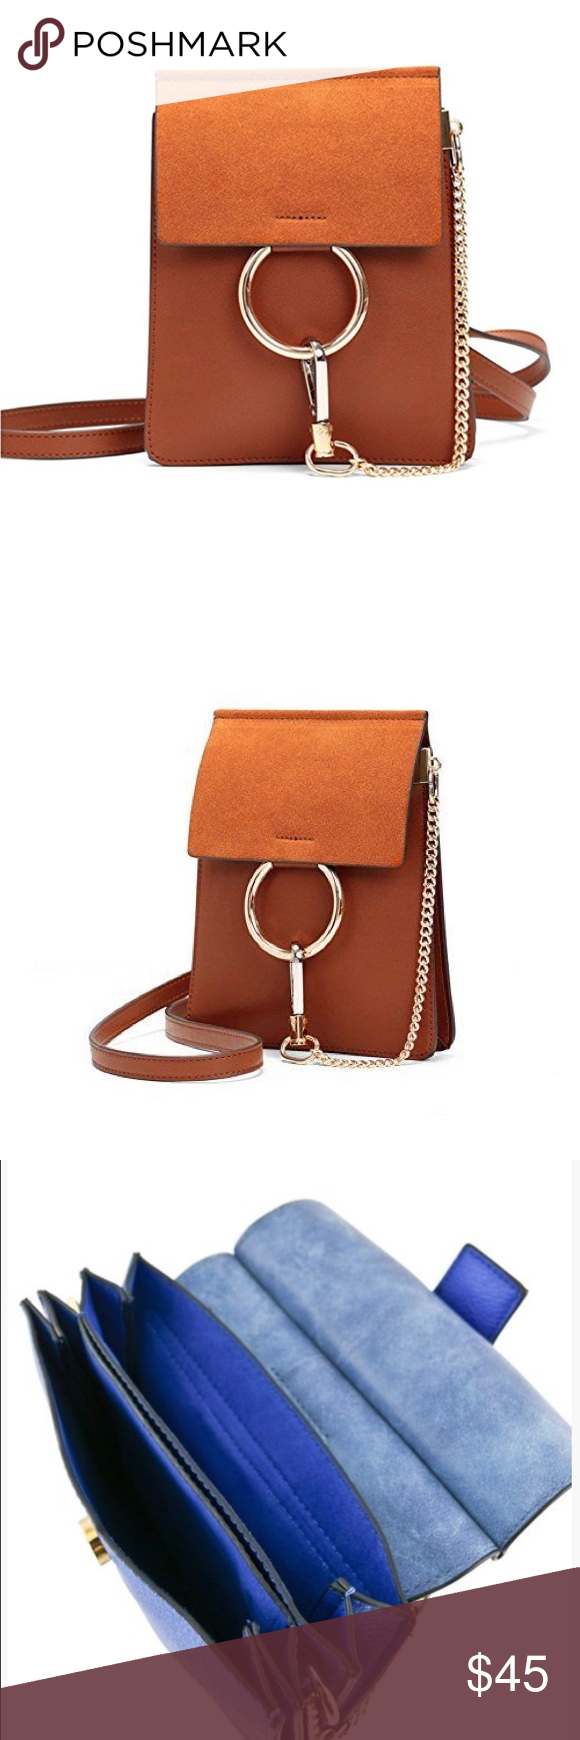 """Chloe Cognac Crossbody with Gold Ring Hardware Chloe Cognac Crossbody with Gold Ring Hardware  Color: Cognac Material: Vegan leather  Style: Mini Clutch/Crossbody Closure: Snap  Features: Two large gold circles, gold chain for holding, and comes with extra long leather adjustable Strap 49""""  Size: 8"""" x 10"""" x 1"""" GlamVault Bags Crossbody Bags"""